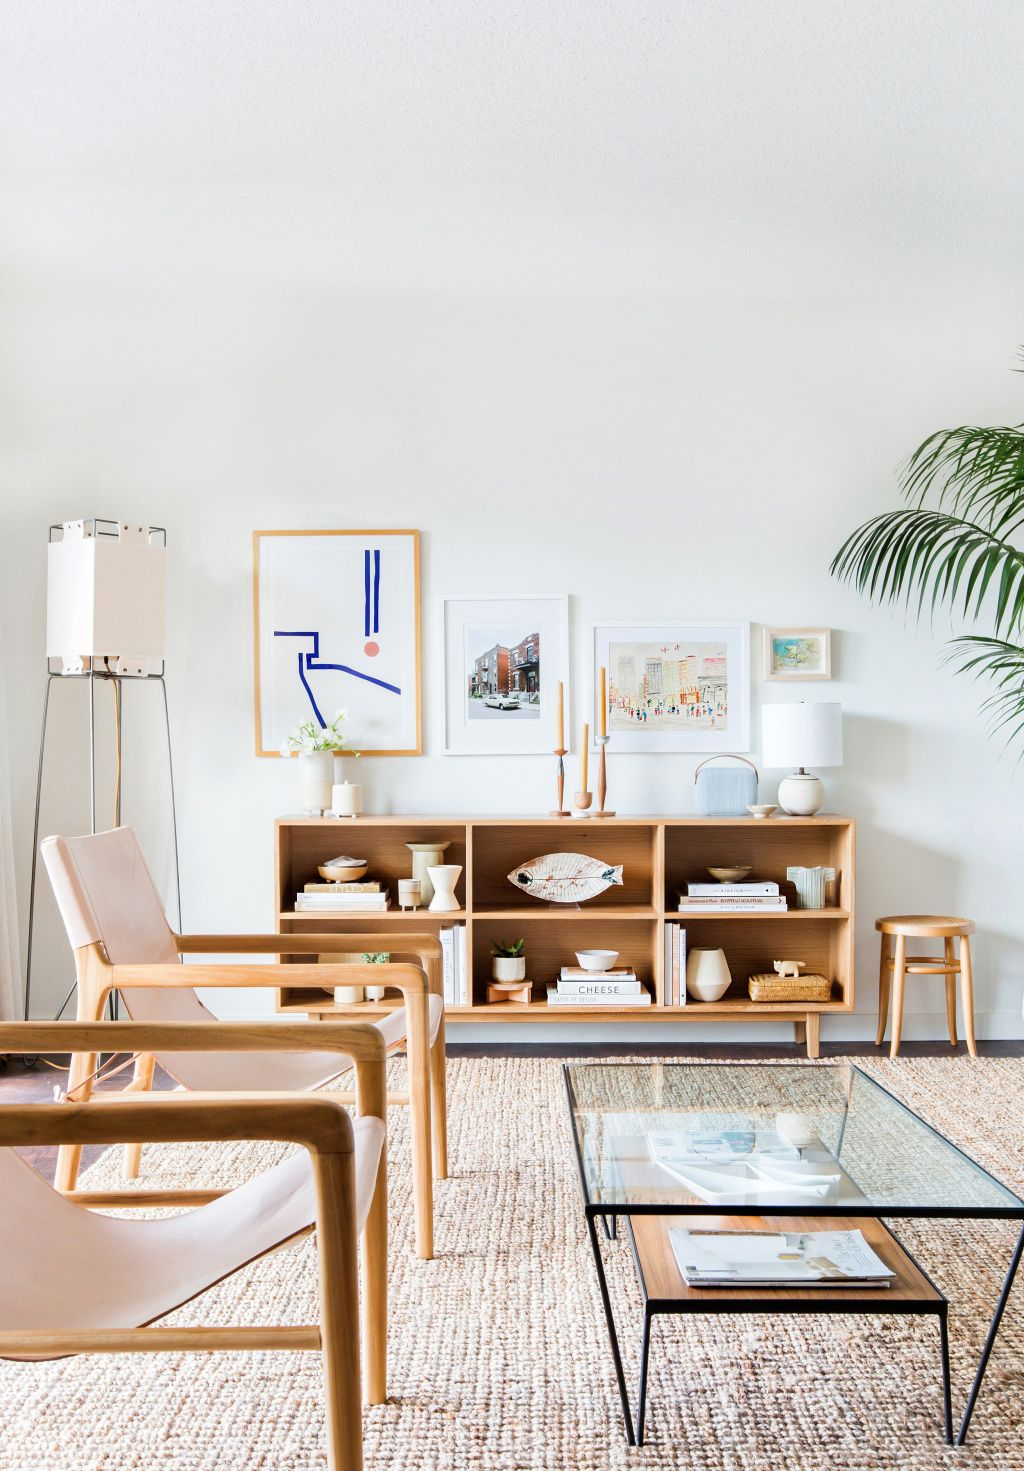 mel living room reveal home sweet target waldo accent table here mjburstin ese scandinavian beautiful craigslist coffee pottery barn wall shelves white wicker chair beverage tub